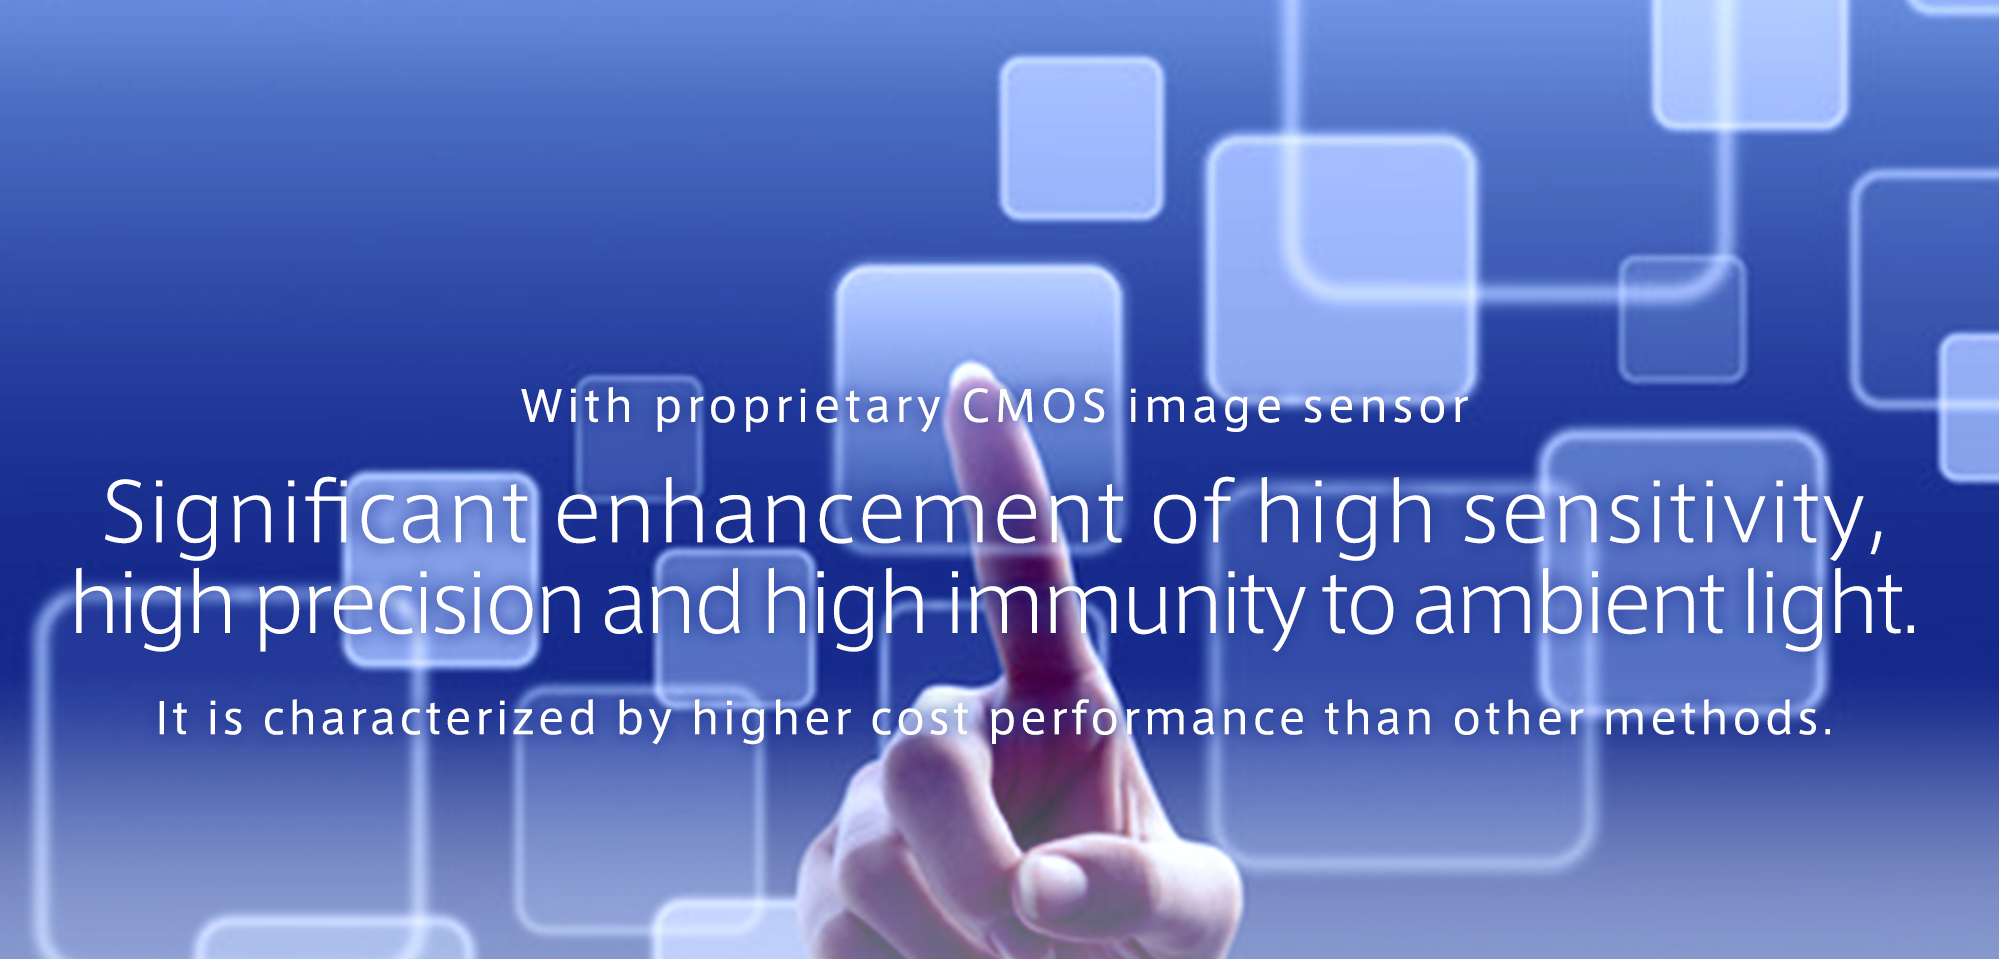 With proprietary CMOS image sensor Significant enhancement of high sensitivity,  high precision and high immunity to ambient light. It is characterized by higher cost performance than other methods.